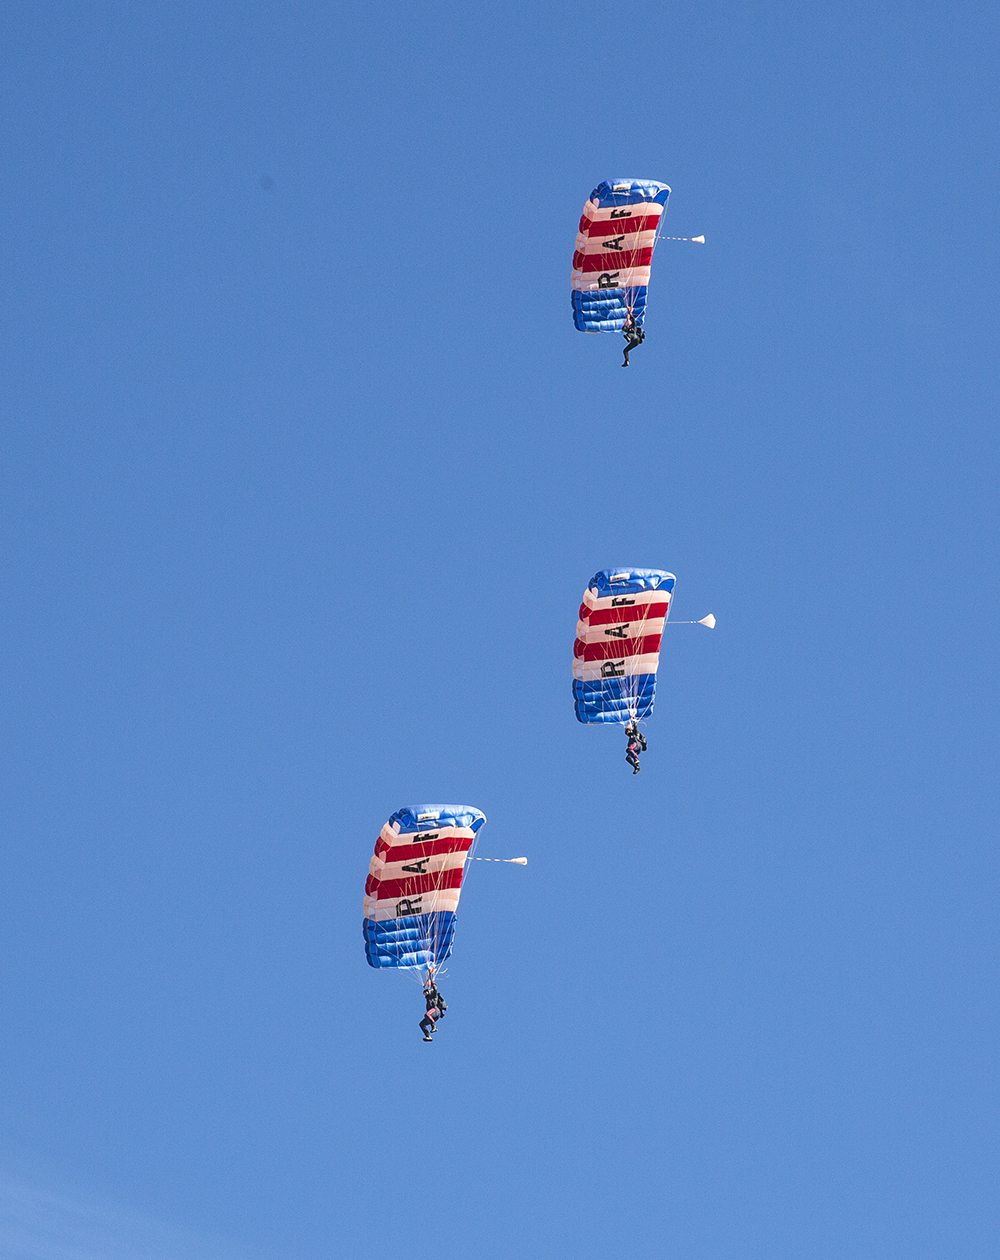 The RAF Falcons conducting their training in California, USA